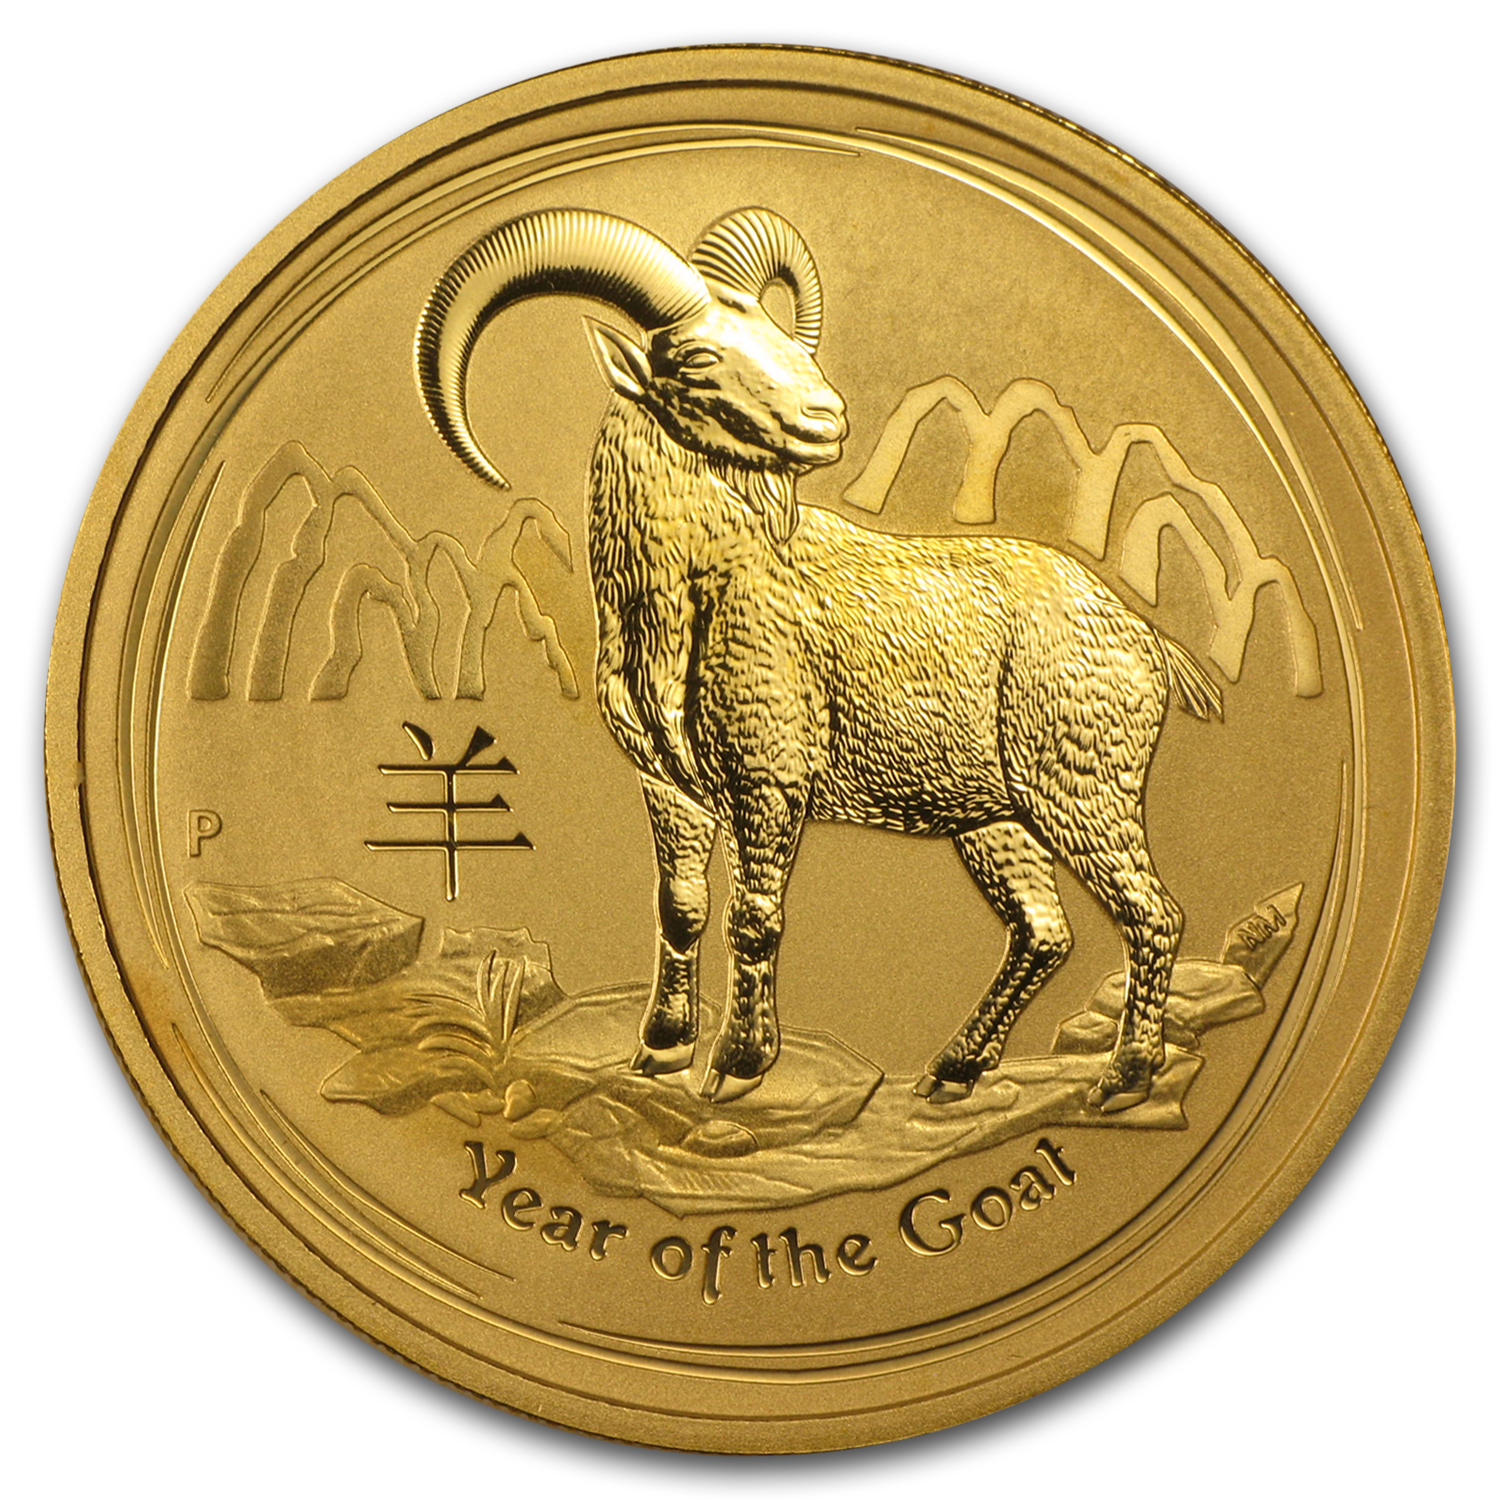 2015 1 oz Gold Lunar Year of the Goat BU (Abrasions)